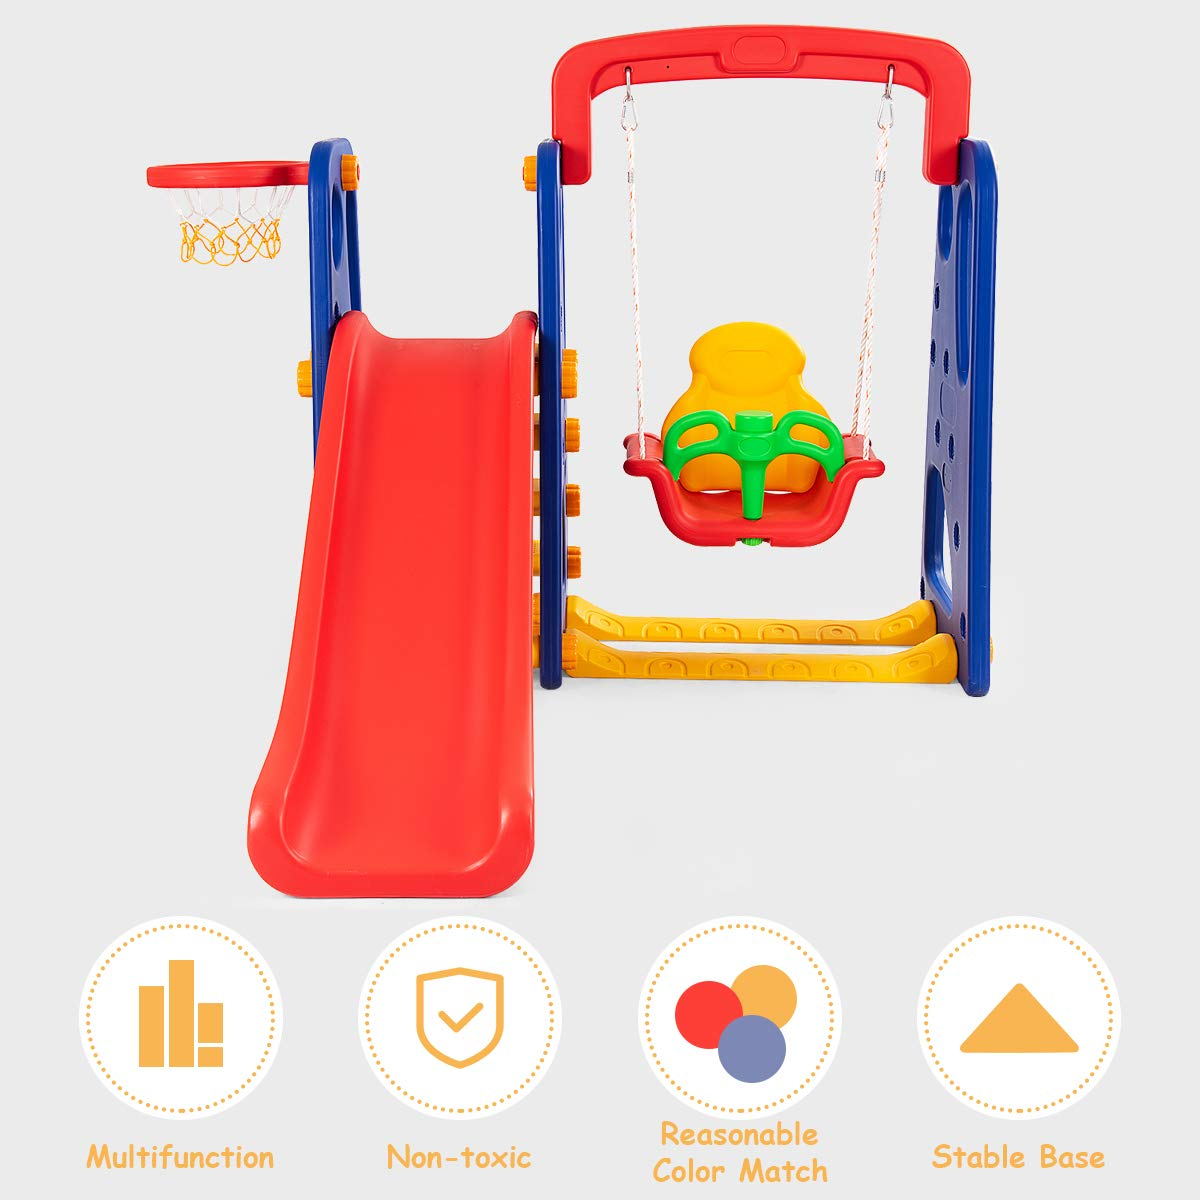 Costzon Toddler Climber and Swing Set, Junior Basketball Hoop Playset for Both Indoors & Backyard (3-in-1 Slide & Swing Set) by Costzon (Image #5)